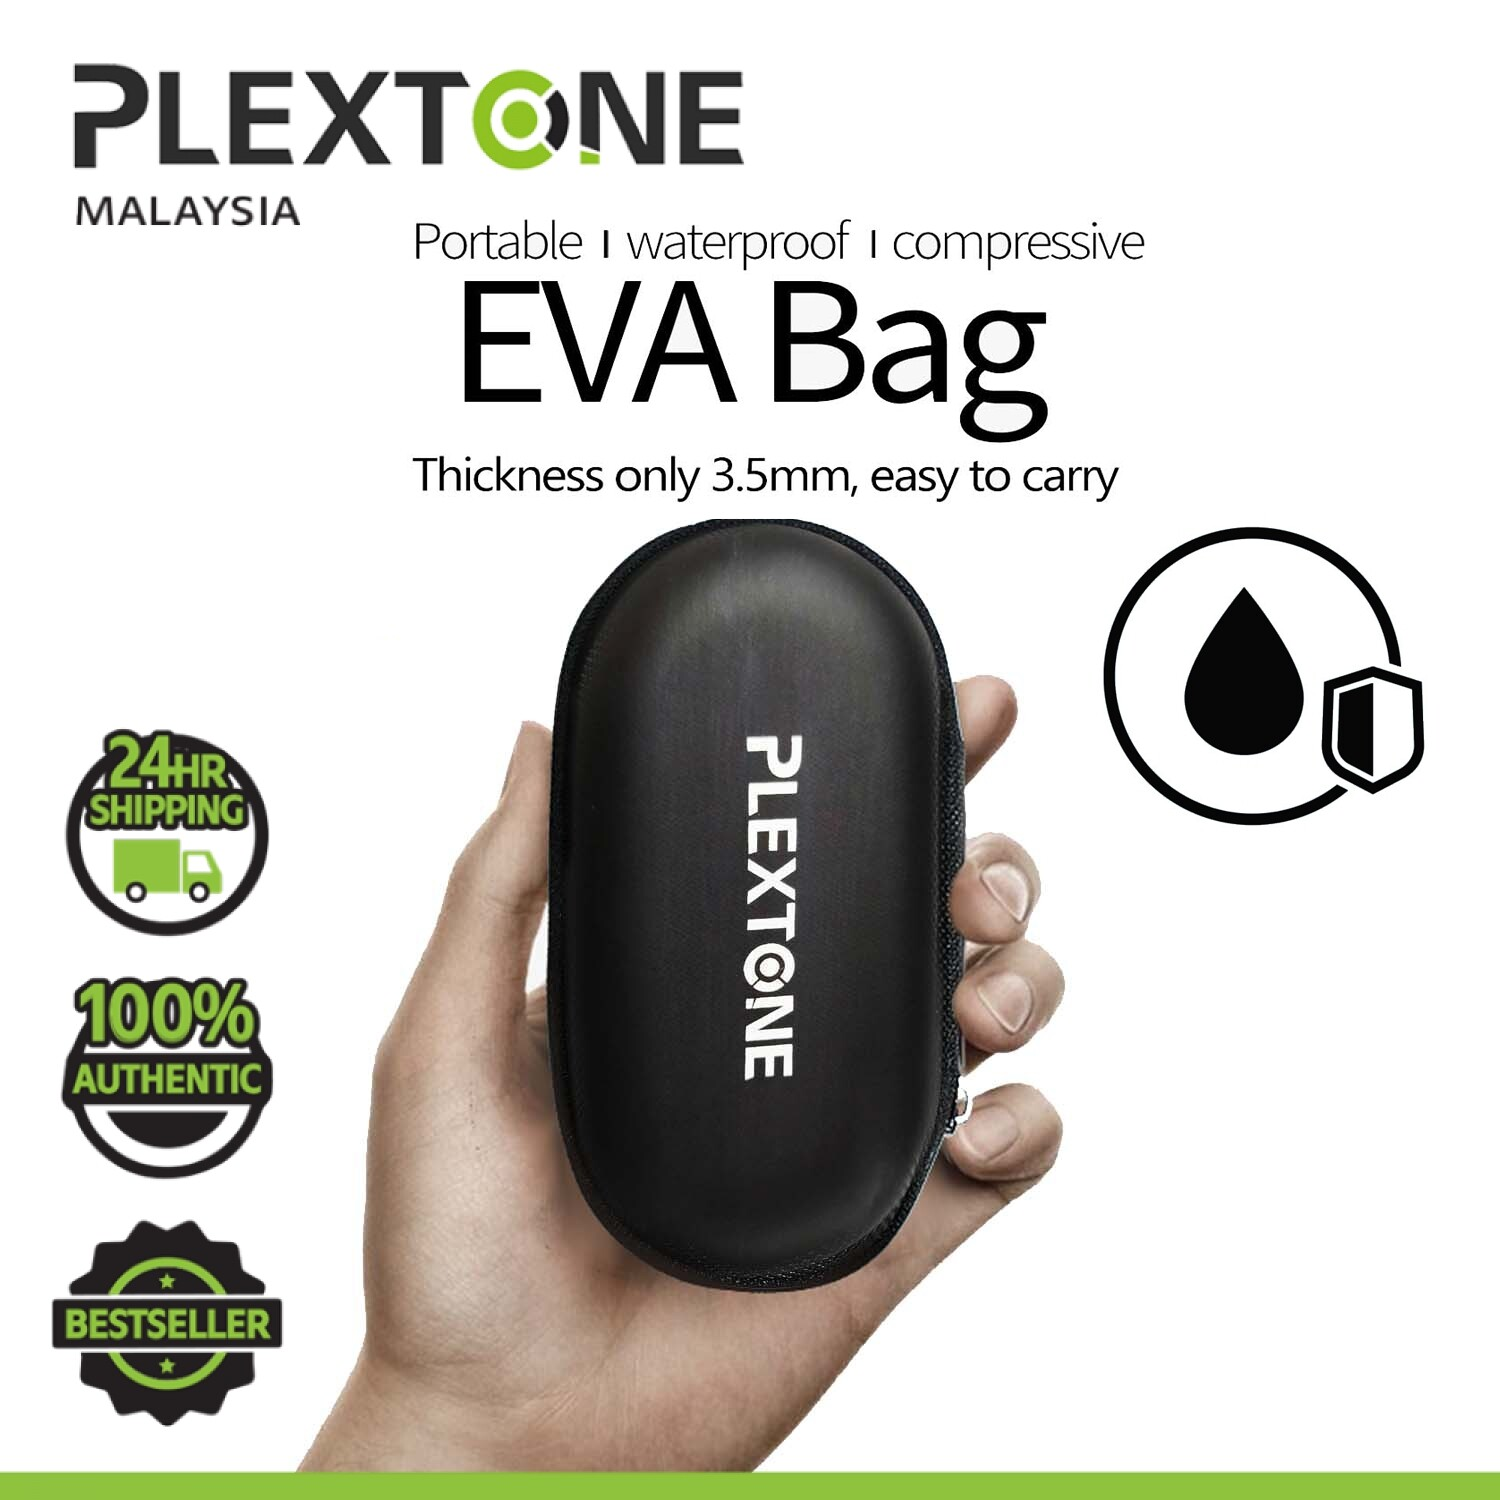 PLEXTONE NYLON BAG WATERPROOF PROTECTION for earphone headphone PORTABLE POUCH BAG CASING EARPHONES HEADPHONES STORAGE BOX PROTECTIVE USB CABLE FOR CARRYING CASE